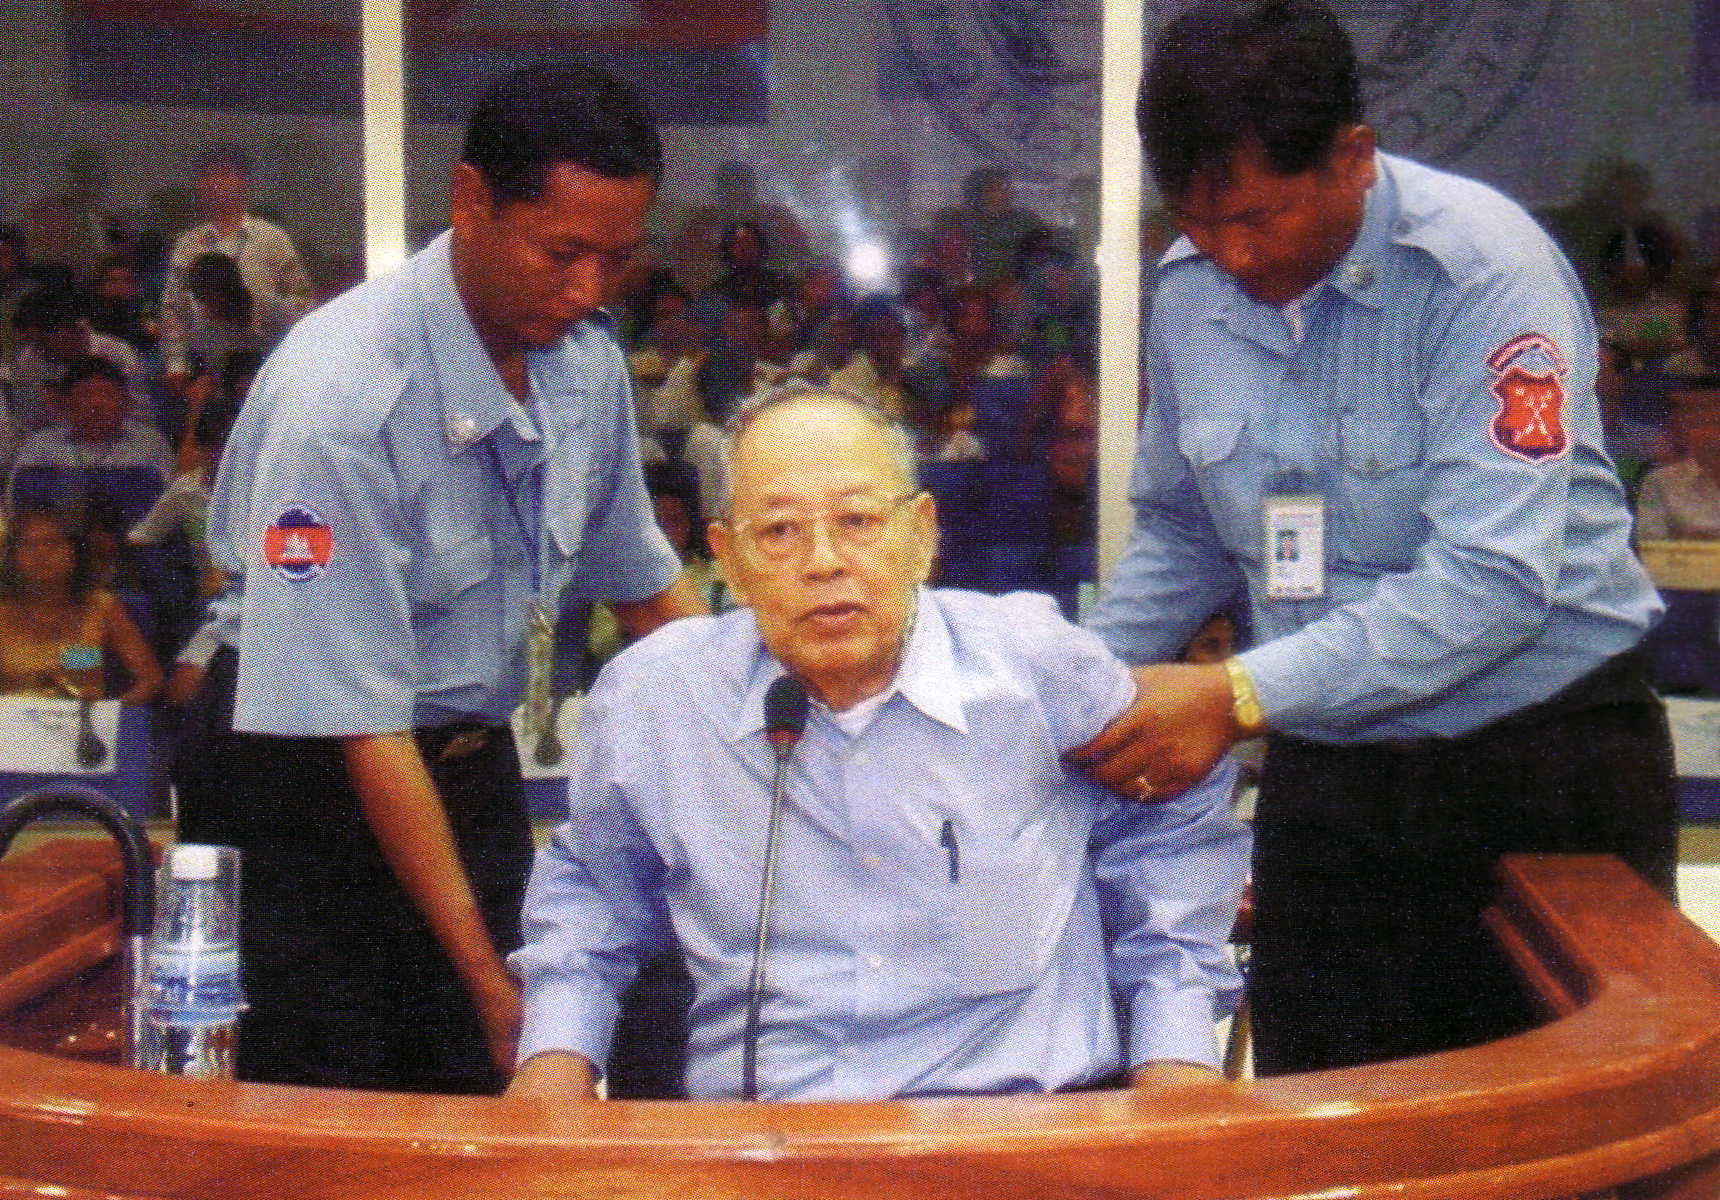 Ieng Sary Khmer Rouge leader 2008 Reuter photo